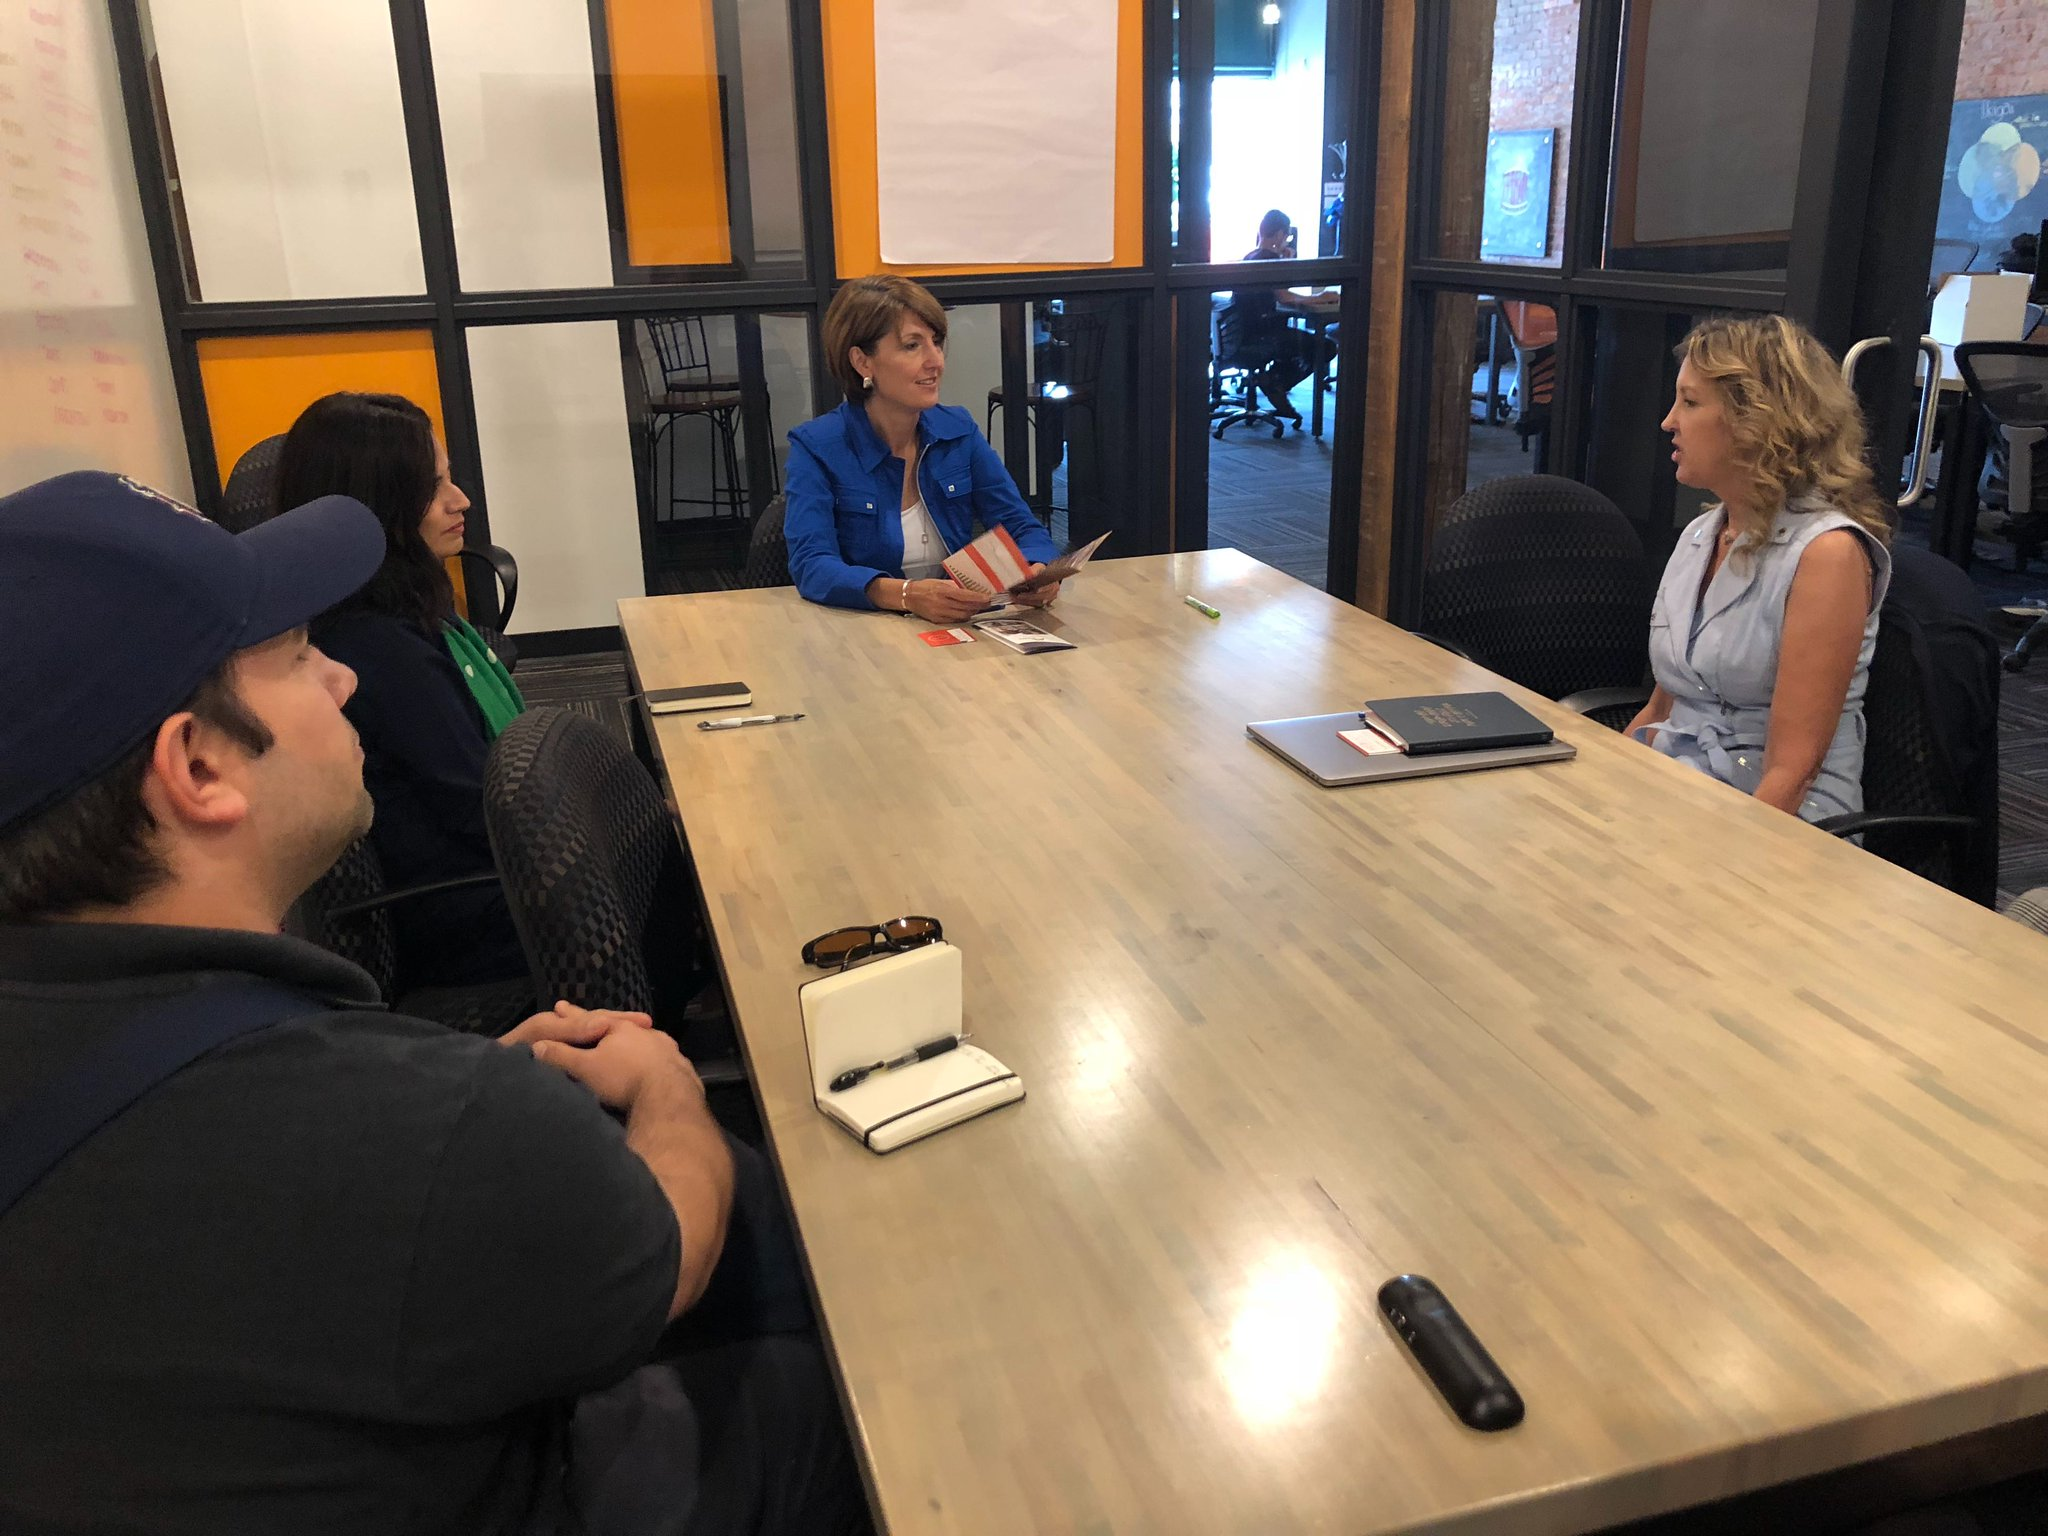 Rep. Cathy McMorris Rodgers meets with StartUp Spokane — a member of her tech and innovation coalition in Washington's 5th District — during the August recess. (Courtesy Office of Rep. Cathy McMorris Rodgers)